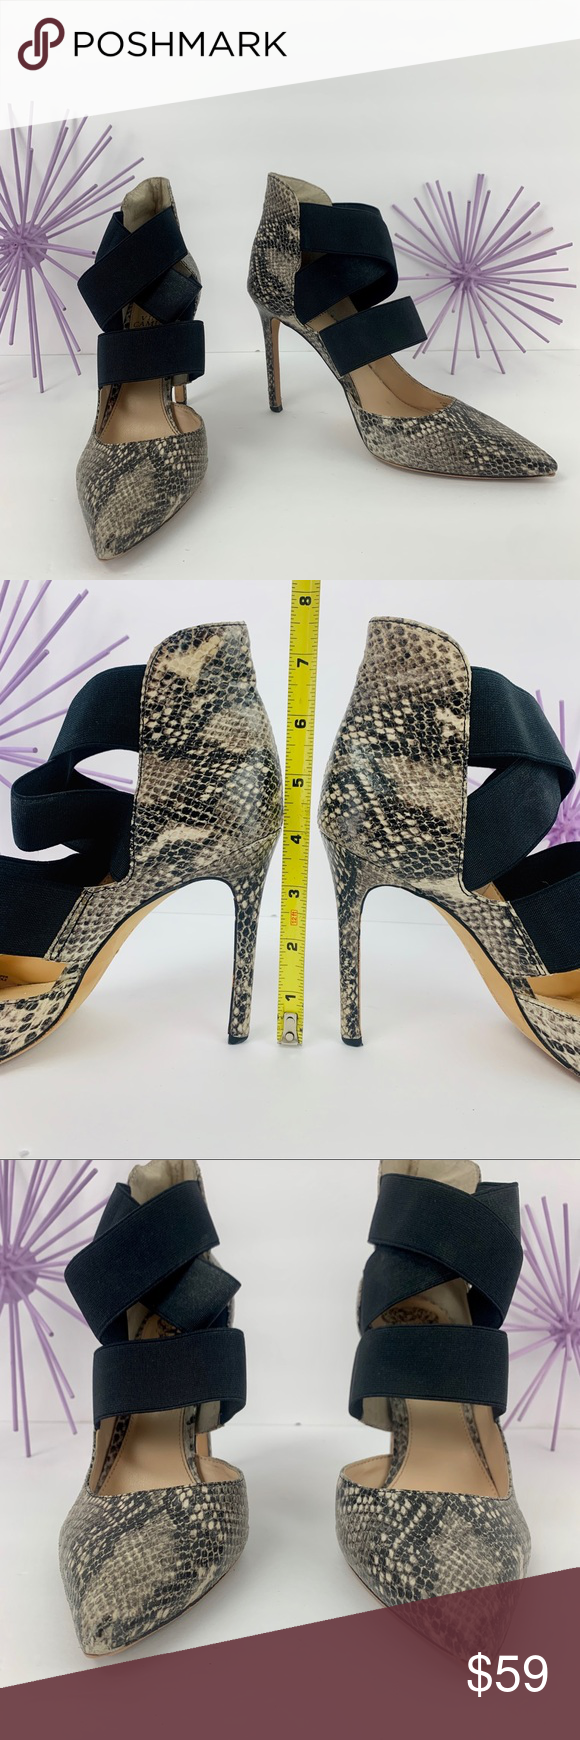 Vince Camuto / Cream Gray Black Snake Criss Cross Vince Camuto VC-NIGEL, black elastic Criss Cross front ankle strap. Cream, Black ,Gray Faux Snake design. Leather upper. Man made sole. Pointed toes helps to elongate the legs and give High Fashion look. NOTE: Front tip of the left shoe is raised a bit, Refer to photo.  Size 8M Heels 4in.  #0707 Vince Camuto Shoes Heels